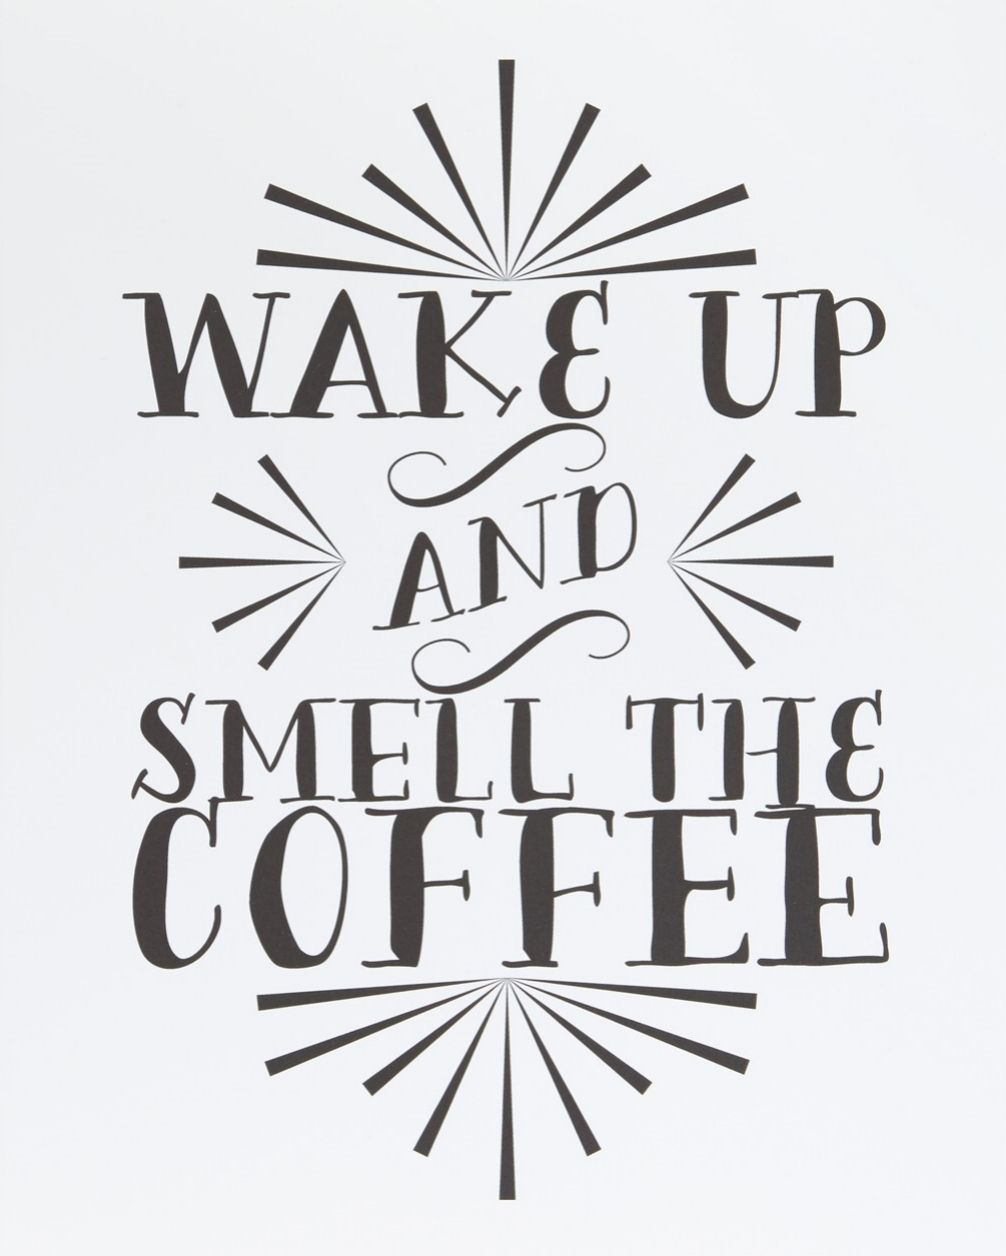 This coffee-centric, hand-lettered art is ideal for framing and adding an eye-catching vintage element to the home.